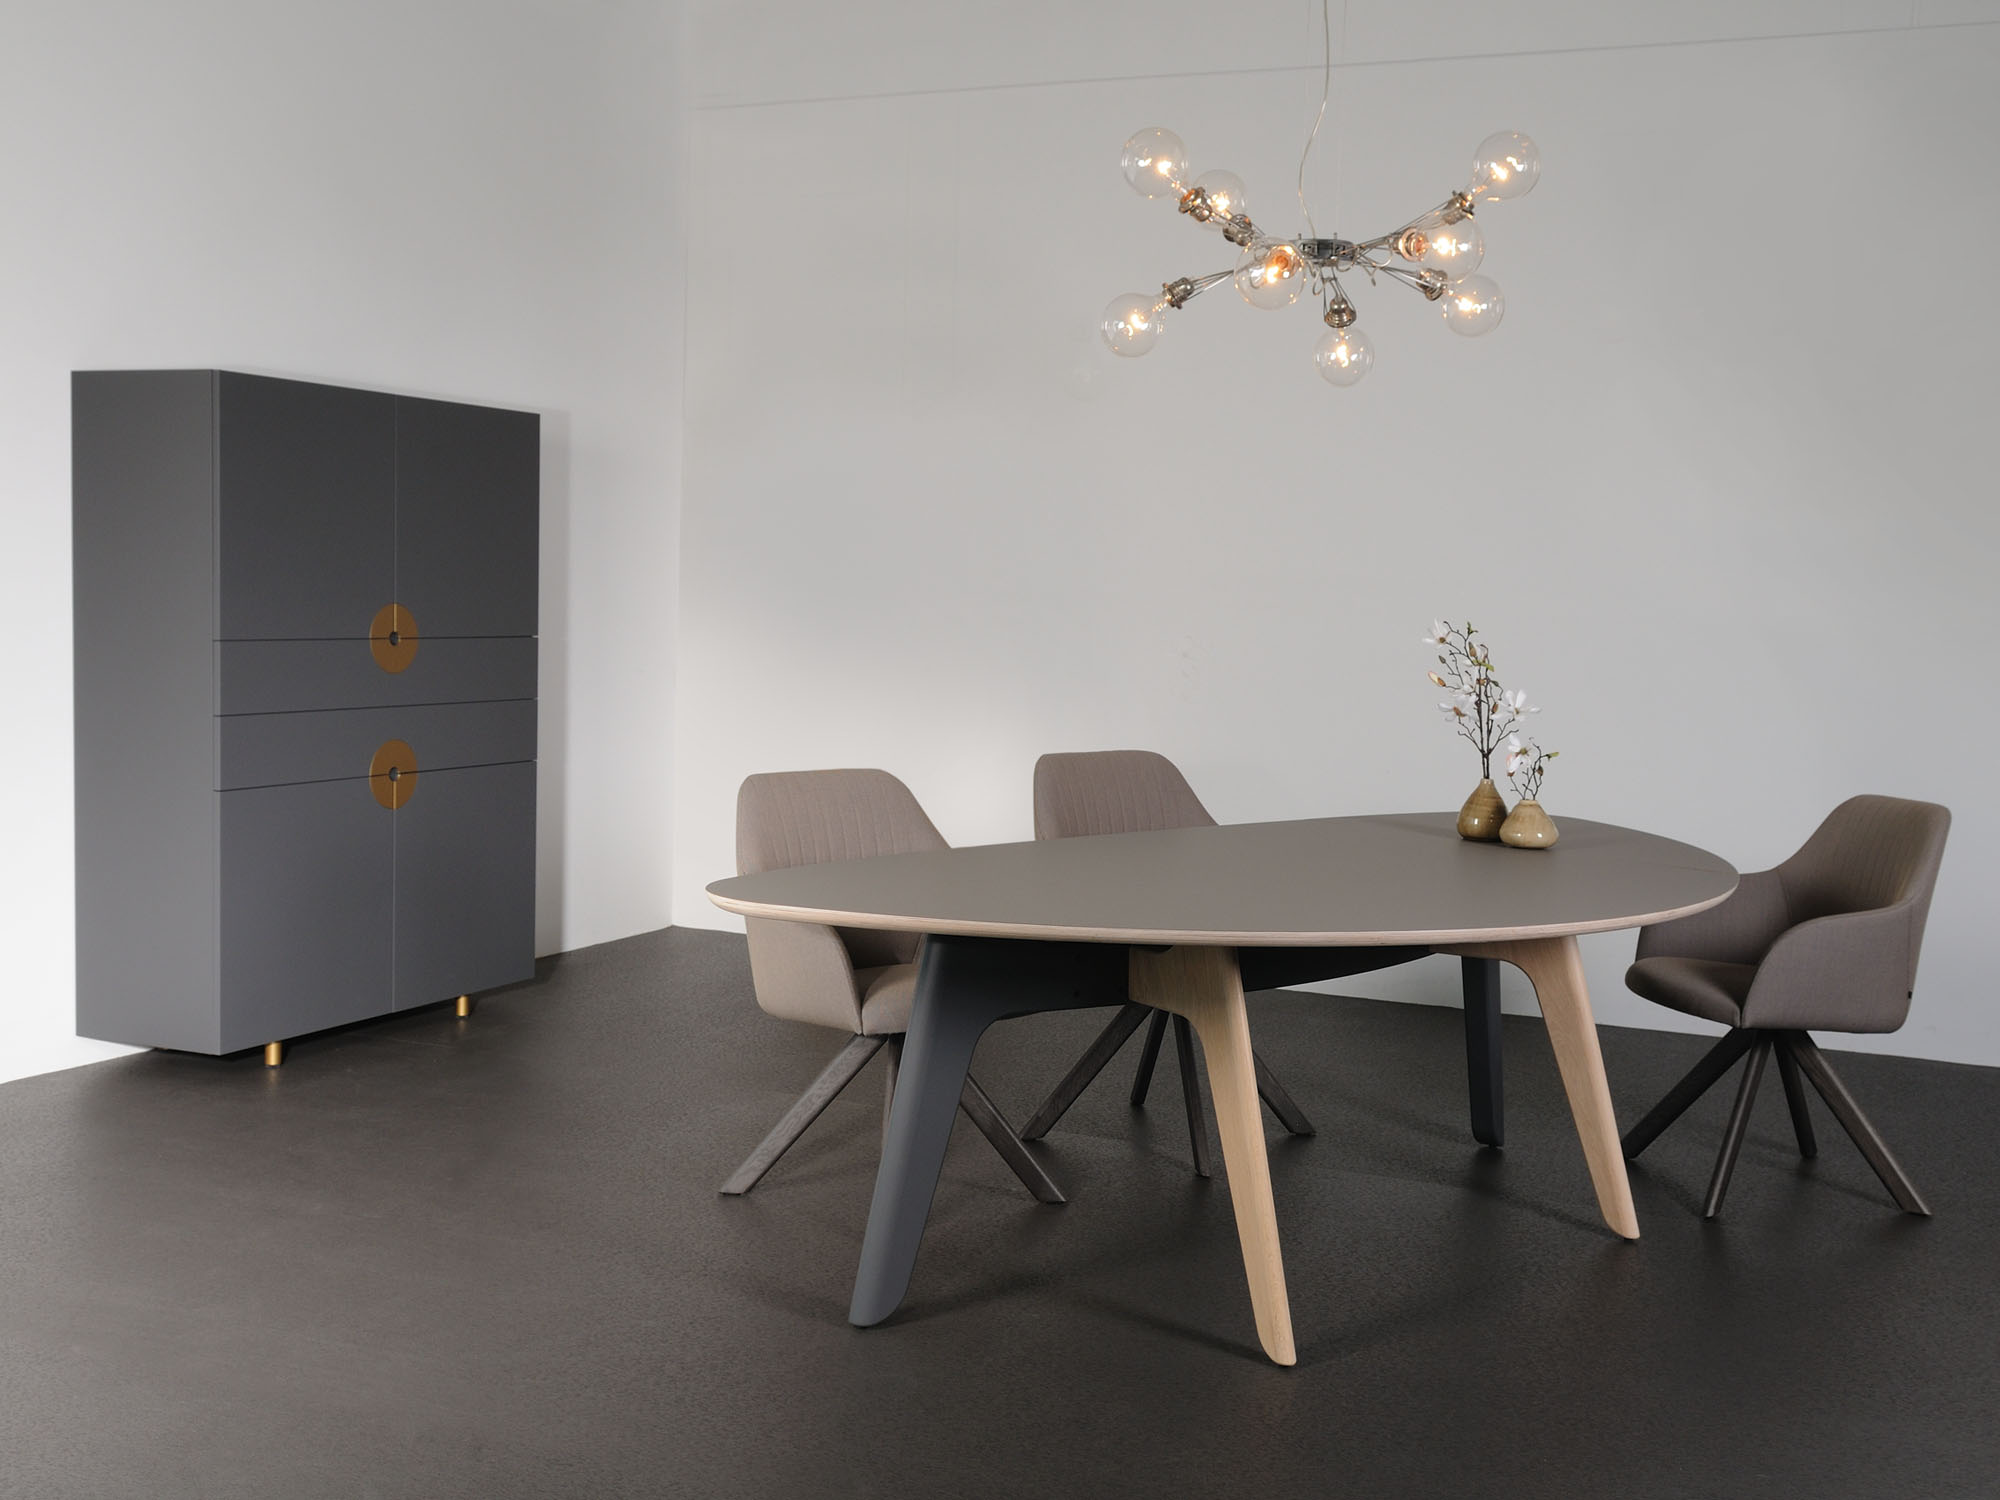 FOLIANT-tafel en DISK-AA kast, ontwerp door Dick Spierenburg